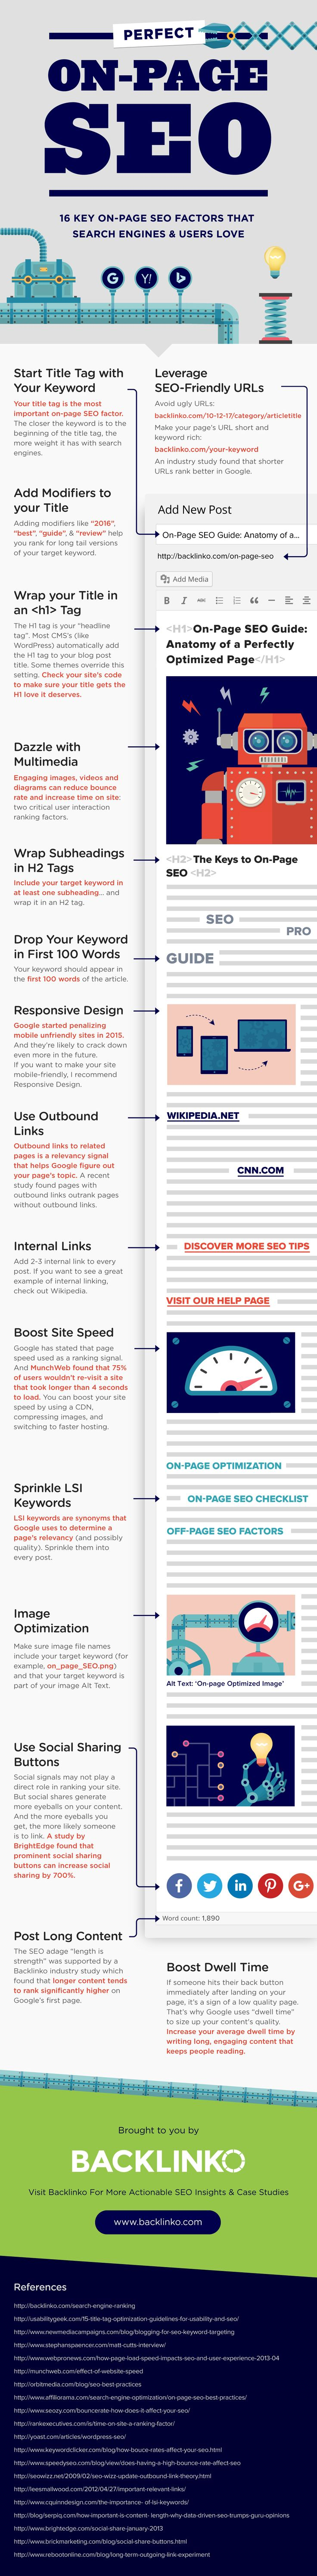 An insanely large infographic that's chock full of useful information...from @Brian Dean.com